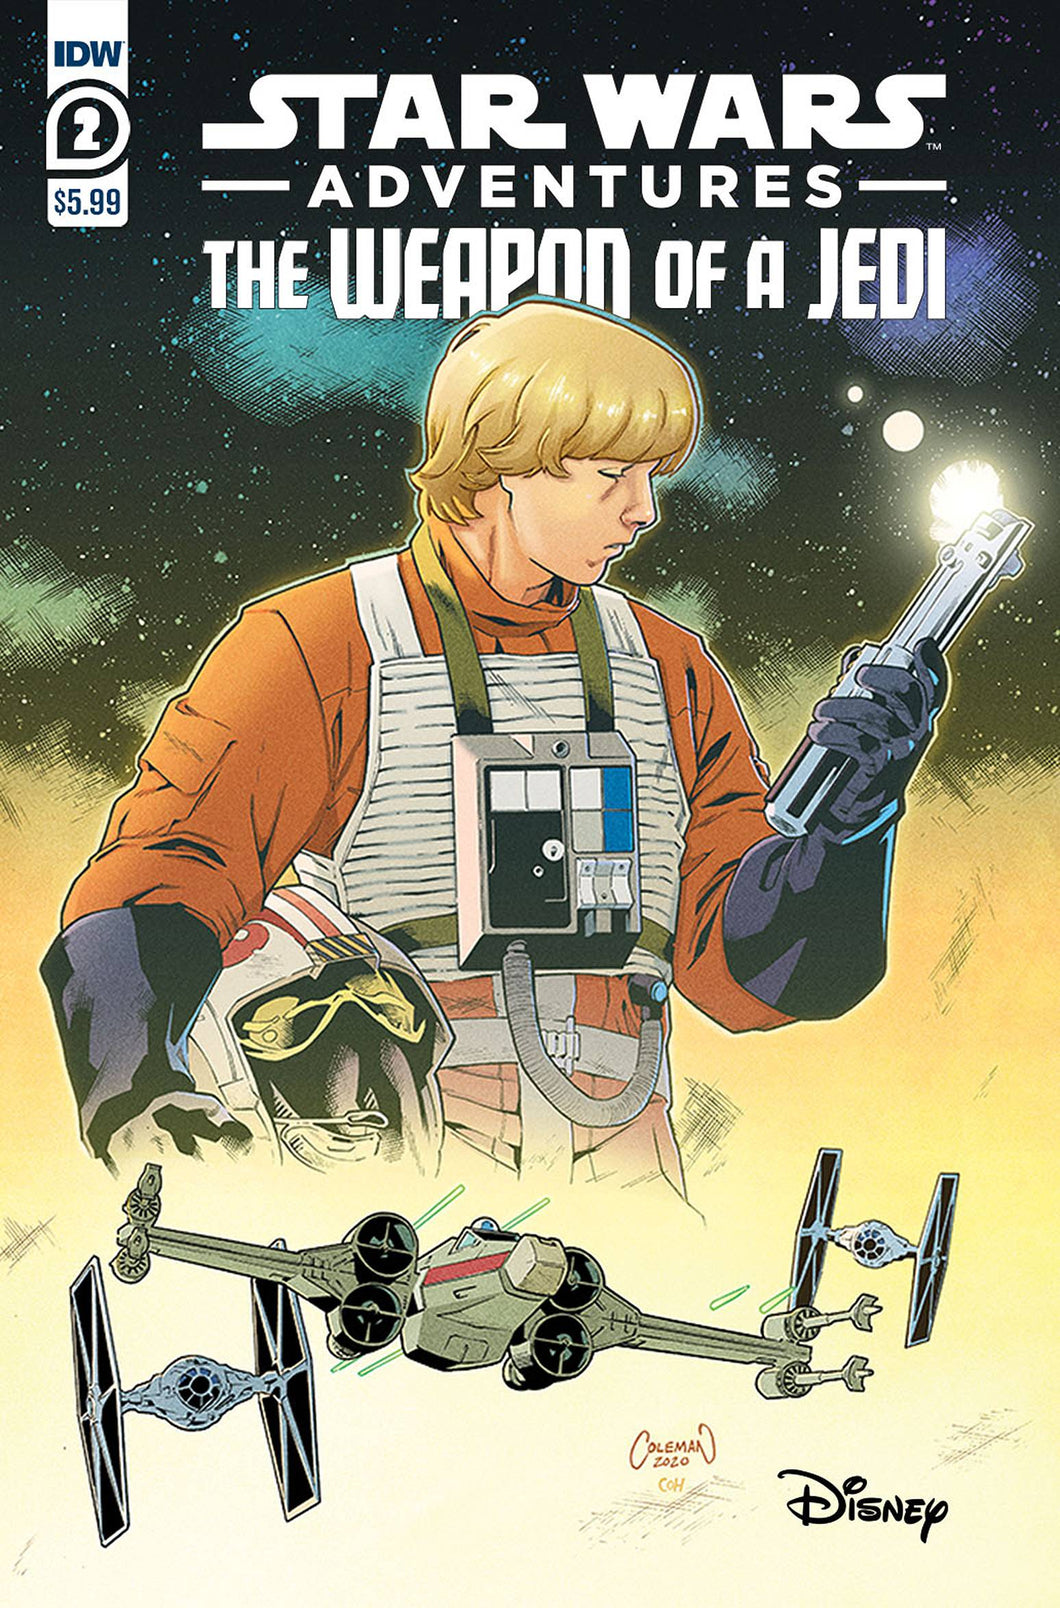 STAR WARS ADVENTURES WEAPON OF A JEDI #2 (OF 2)